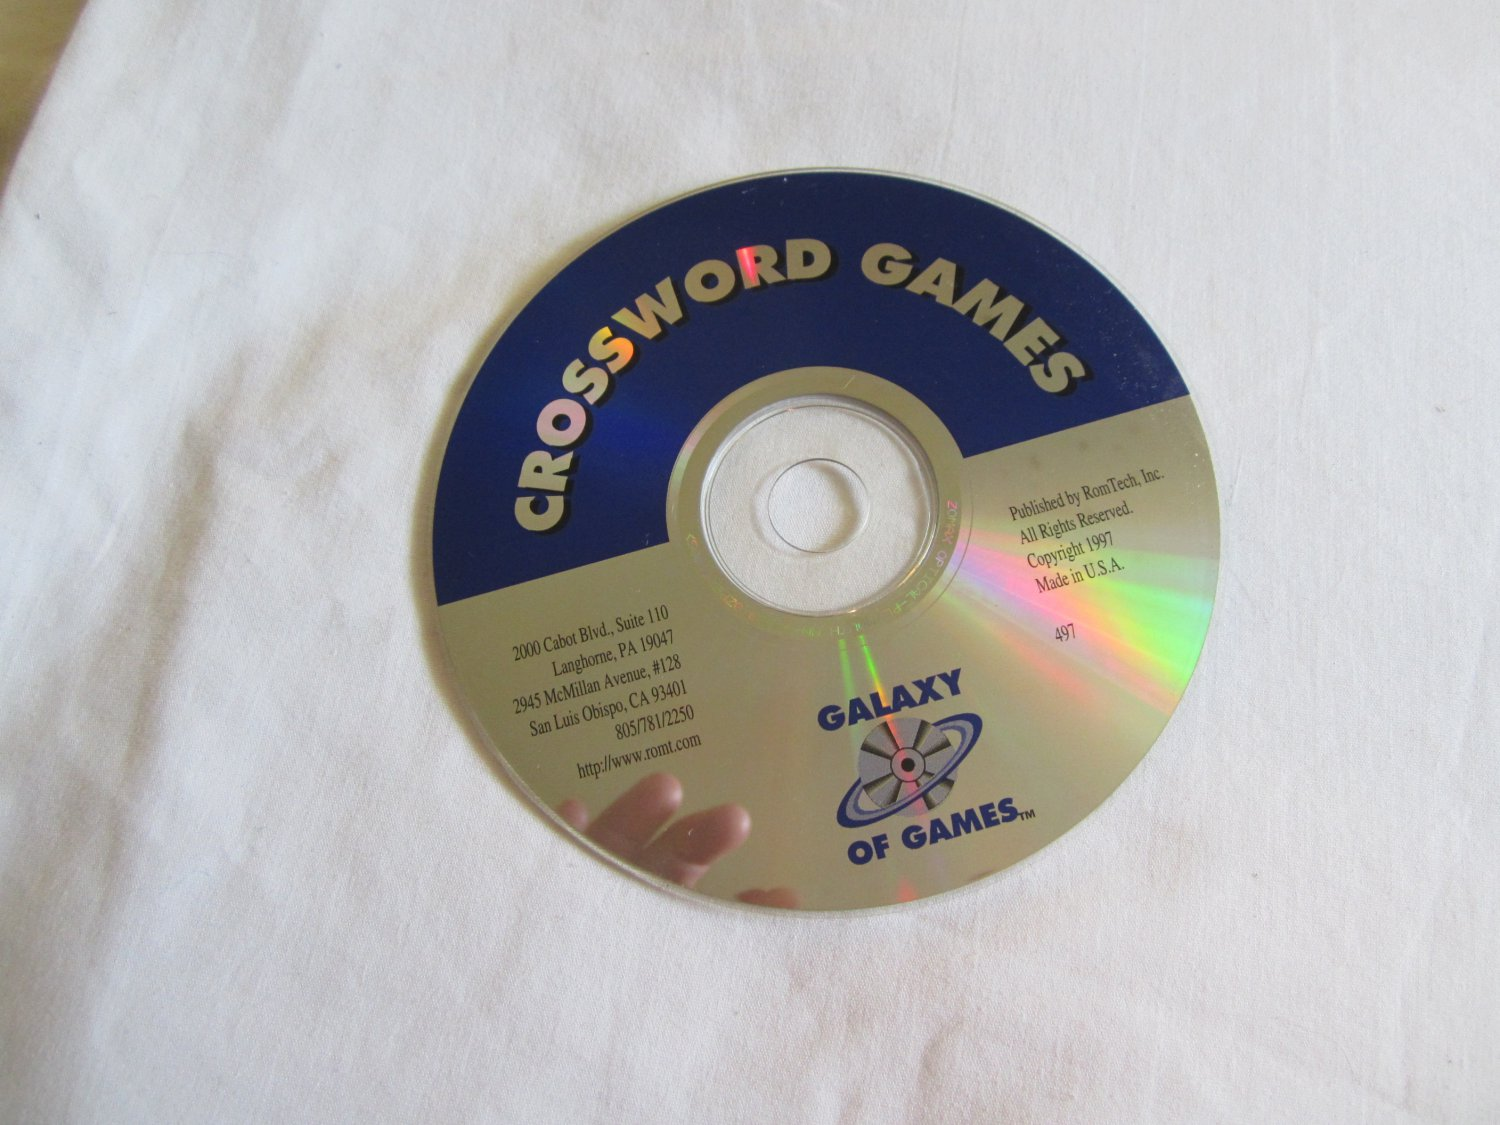 Crossword Games Galaxy of Games CD ROM over 300 Games